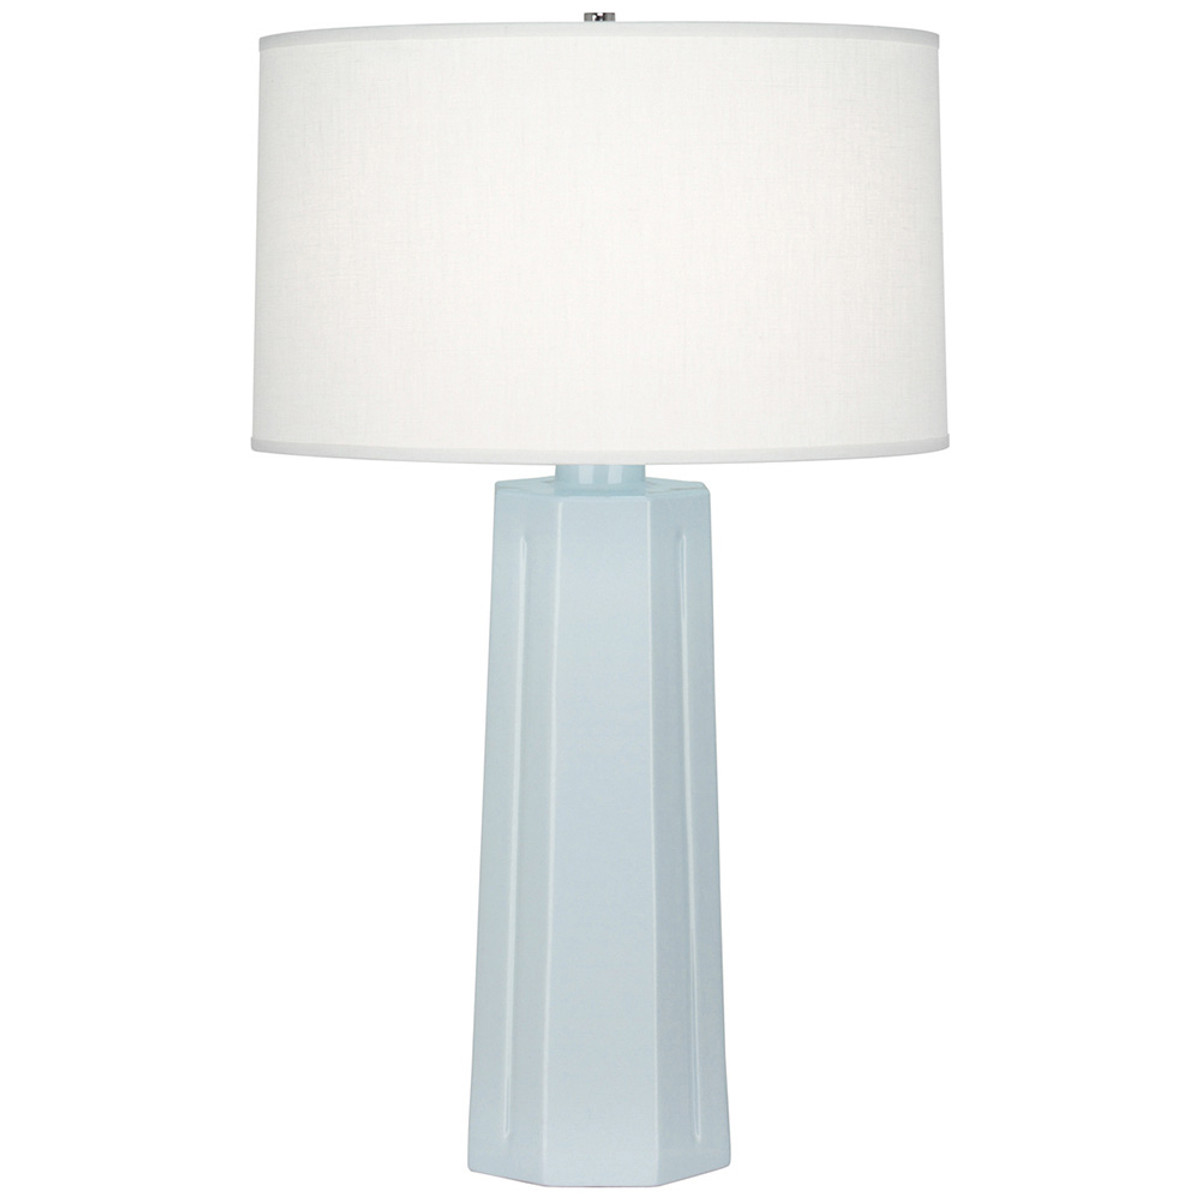 Buy The Mason Table Lamp By Robert Abbey Price Match Guarantee Free Shipping On All Orders From Lightopia